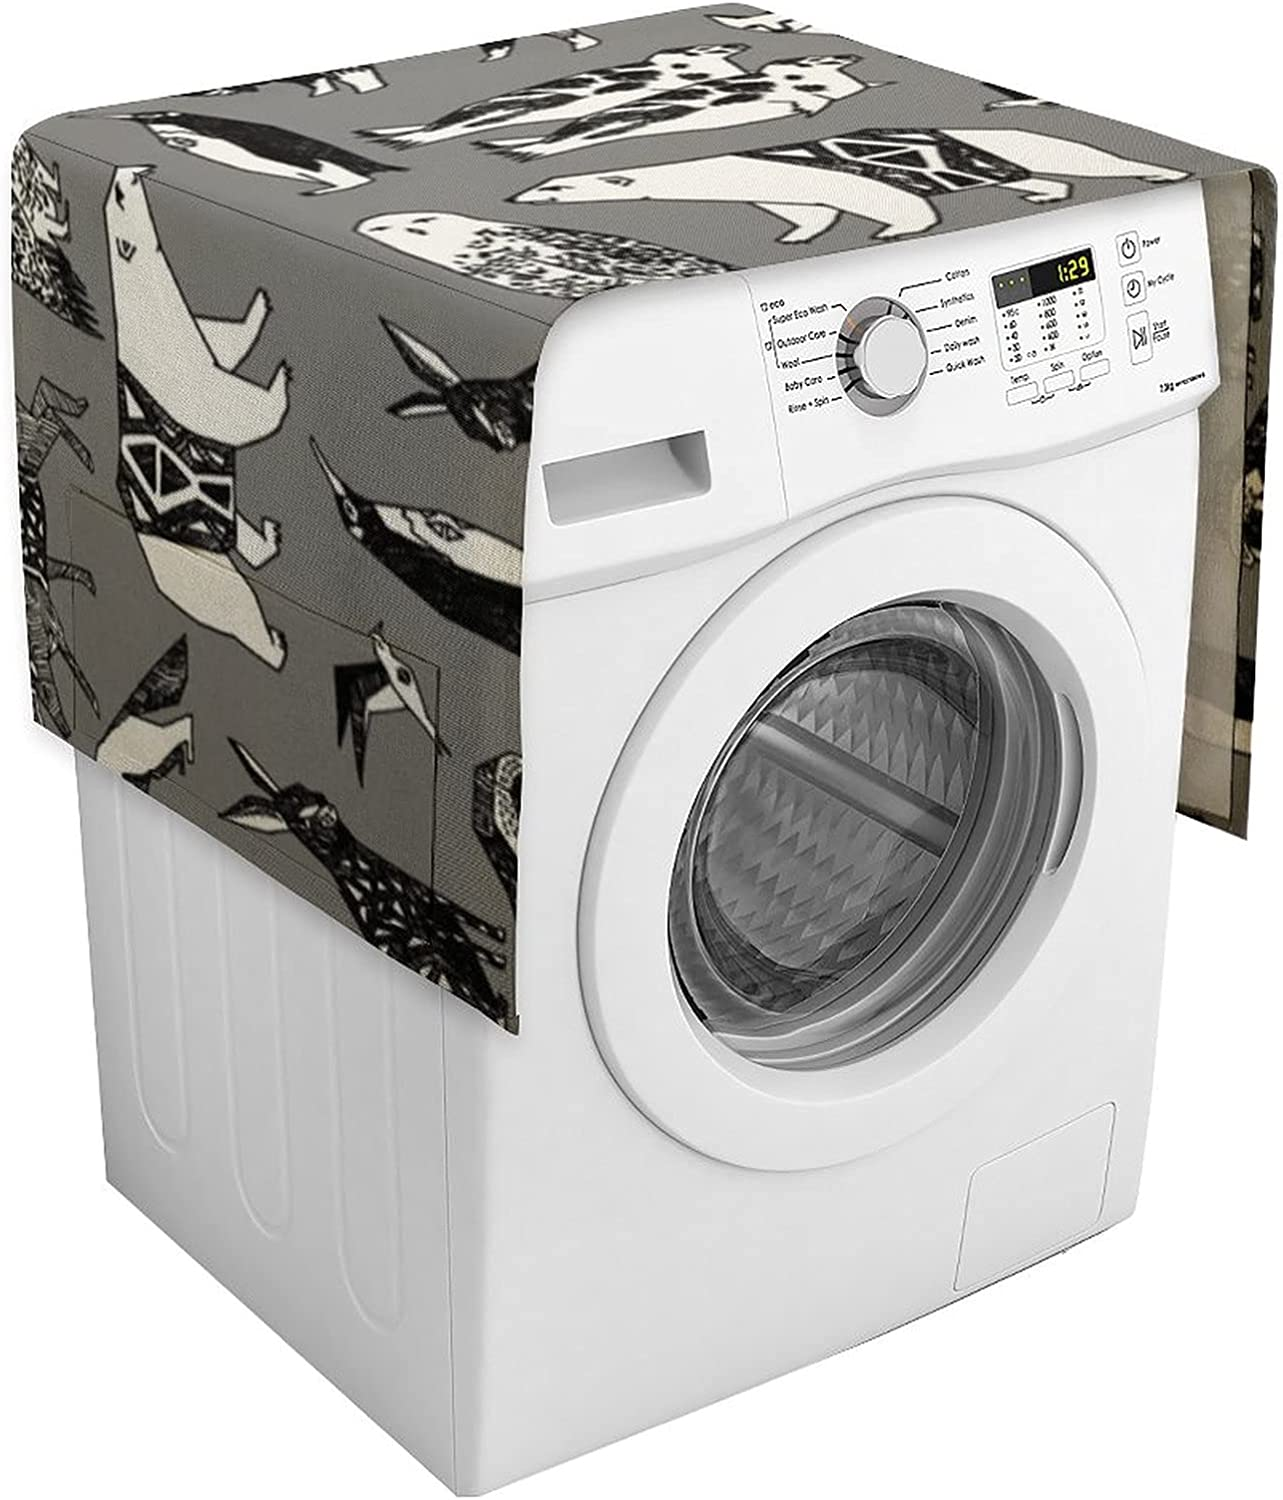 Multi-Purpose New item Washing Machine Covers Washer Ranking TOP15 Appliance Protector